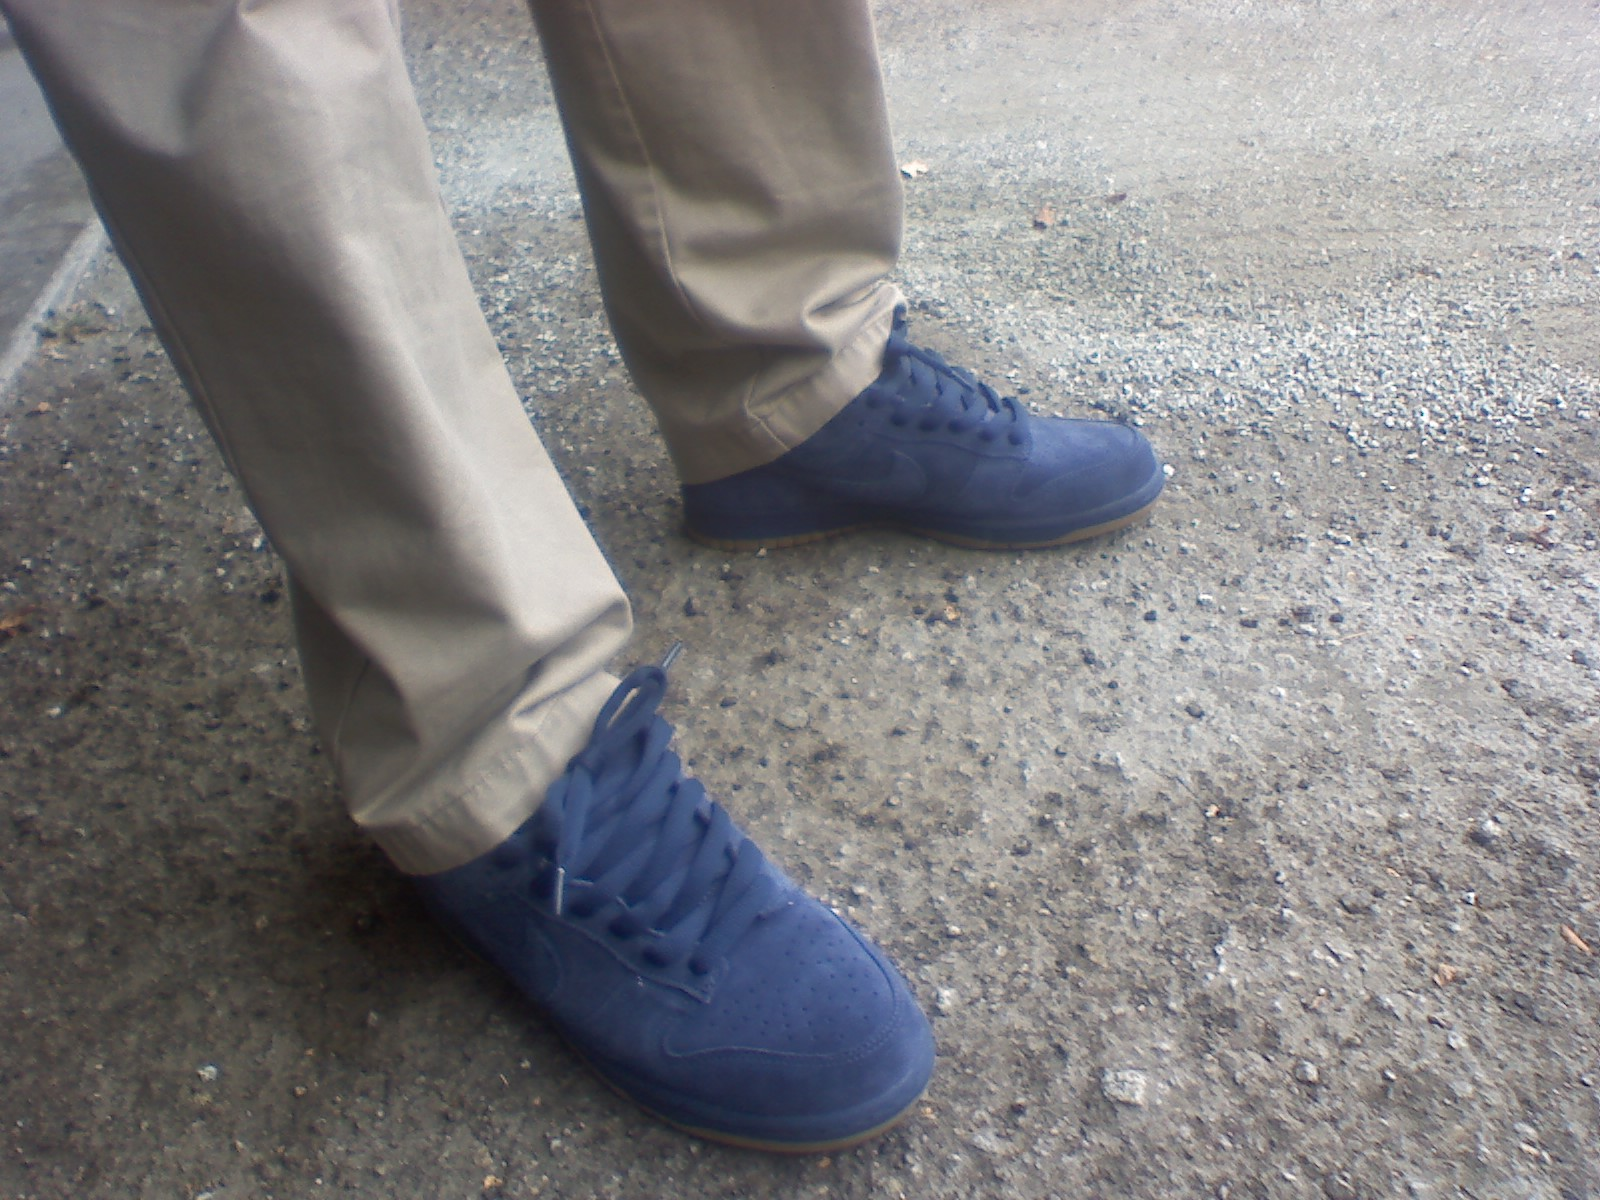 best service f0a0f c37d6 They sport a blue midsole with blue stitching and a gum outsole. These came  with flat, somewhat fat blue laces. FEATURES I threw some navy sb ...